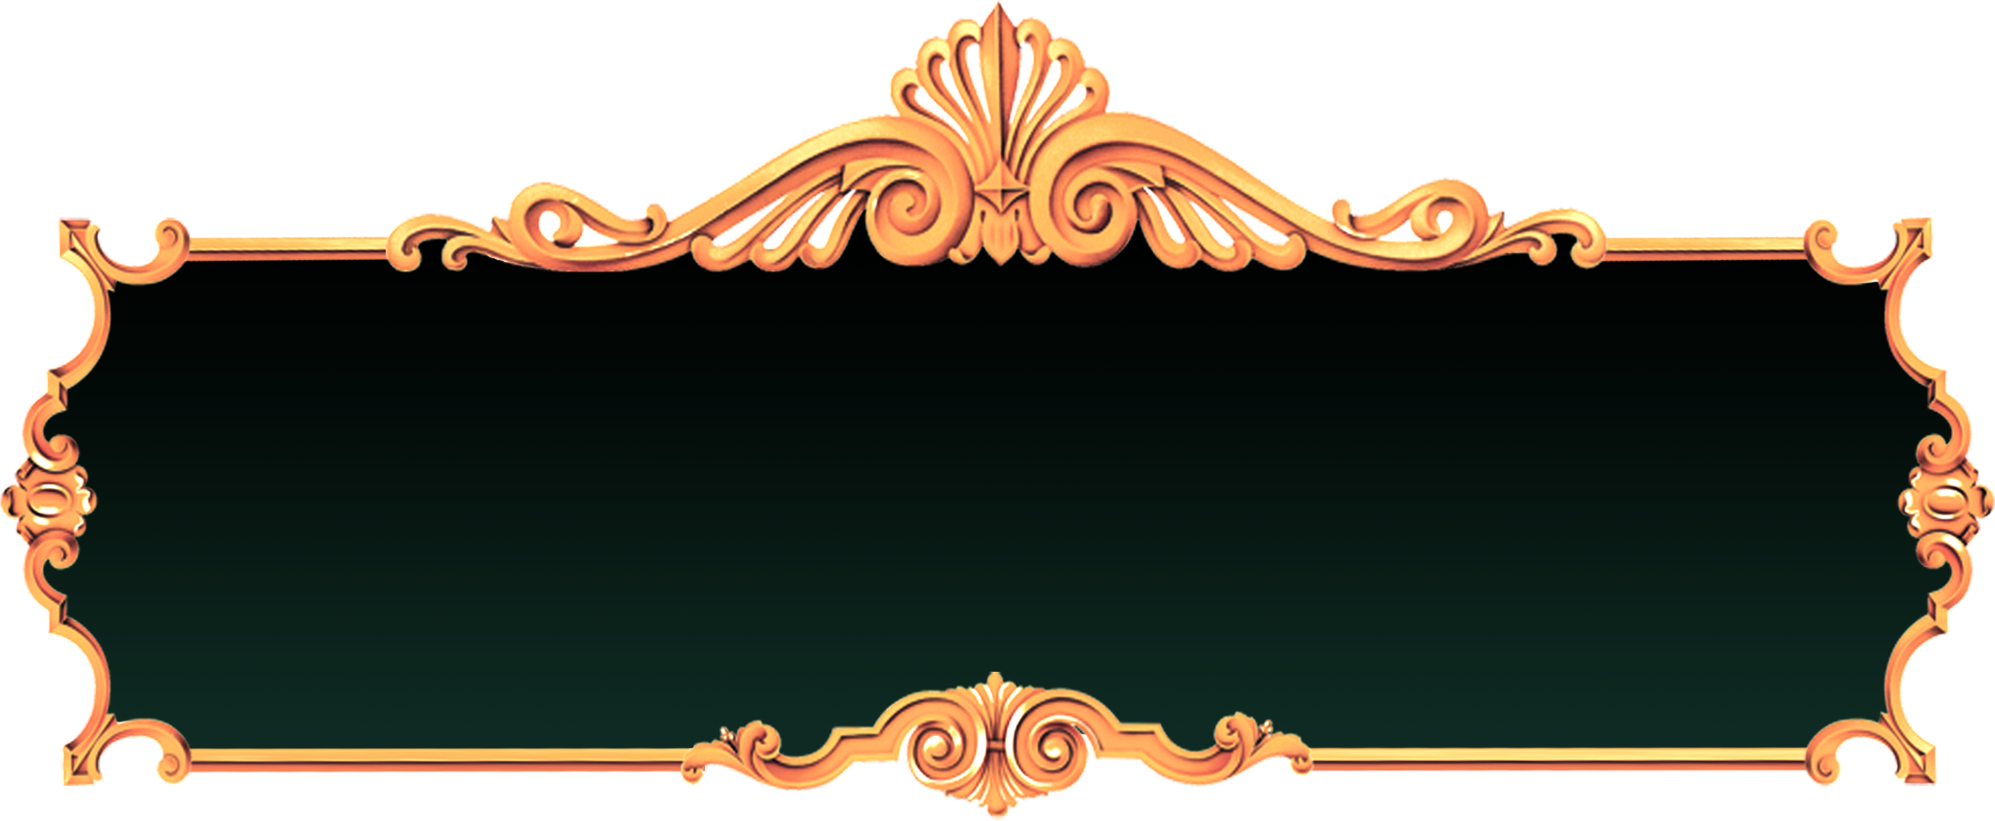 Metallic vector gold background. Image result for frame